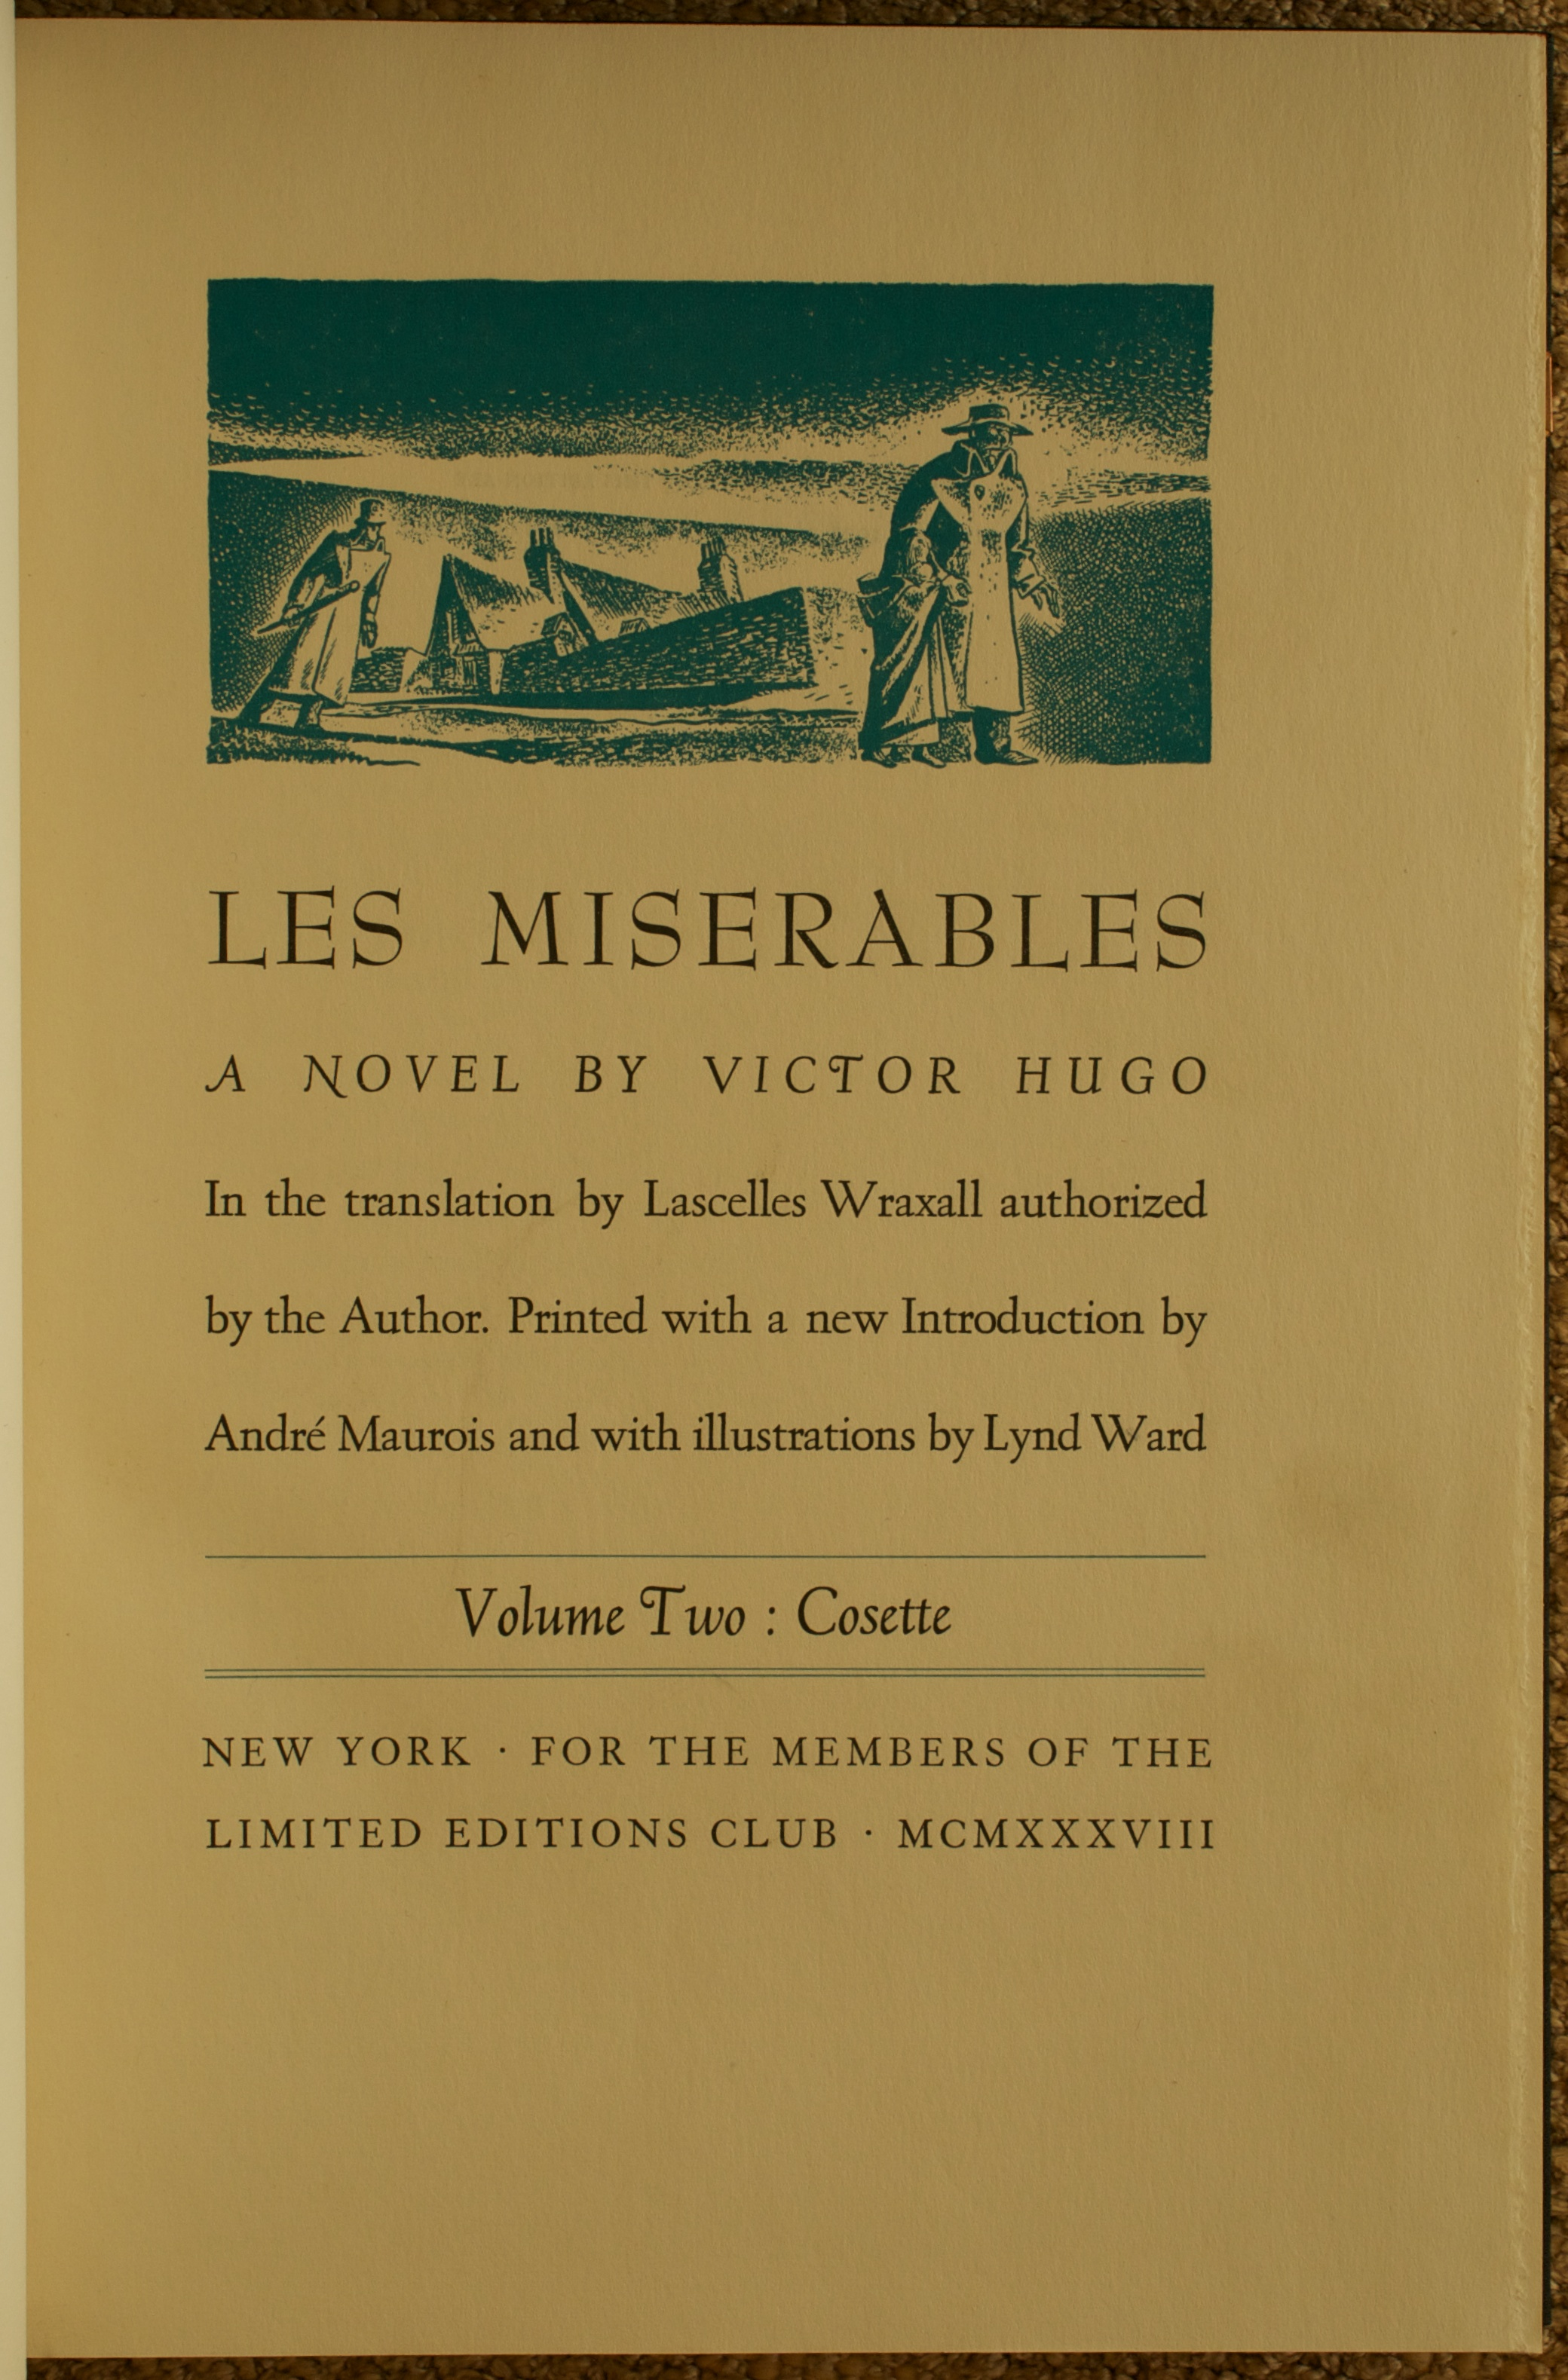 les miserables literary analysis His (hugo's) literary goal seems clear: to give concrete representation to the invisible forces that shape human lives - fate, history, society, cruelty, and _____ melodrama masterpiece hugo's popular and widely published _____ les miserables, which incorporates the aforementioned subjects (fate, history, society, cruelty, revolution), is.